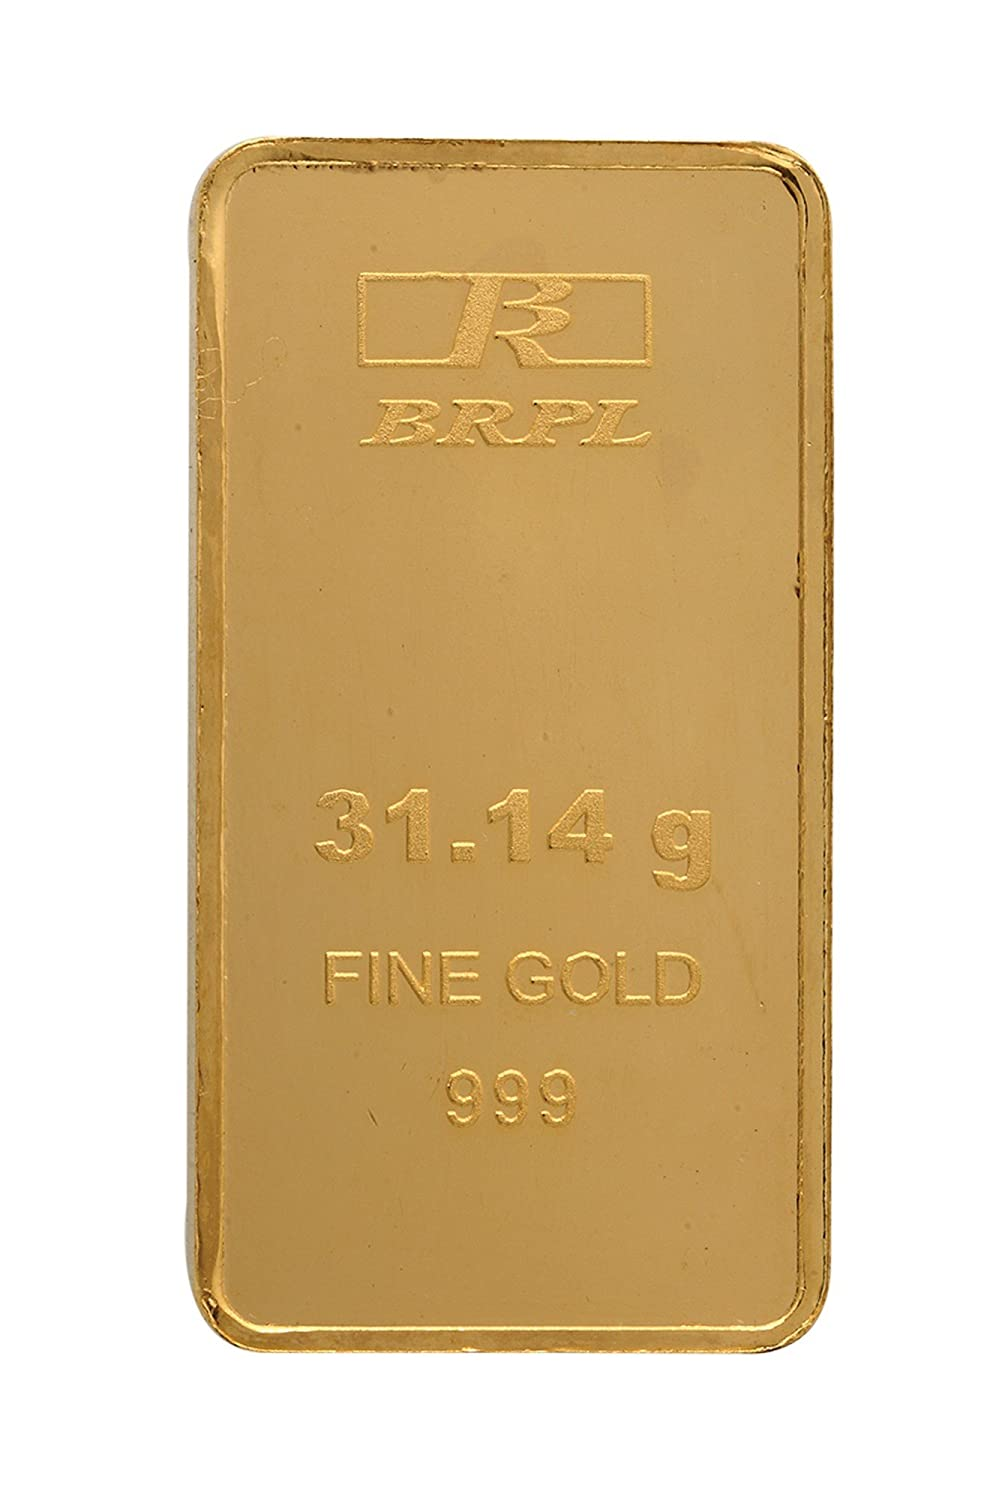 Dhanteras Gold Sale!! Upto 50% Off On Gold Products By Amazon | Bangalore Refinery 31.104 gm, 24k (999) Yellow Gold Bar @ Rs.98,200